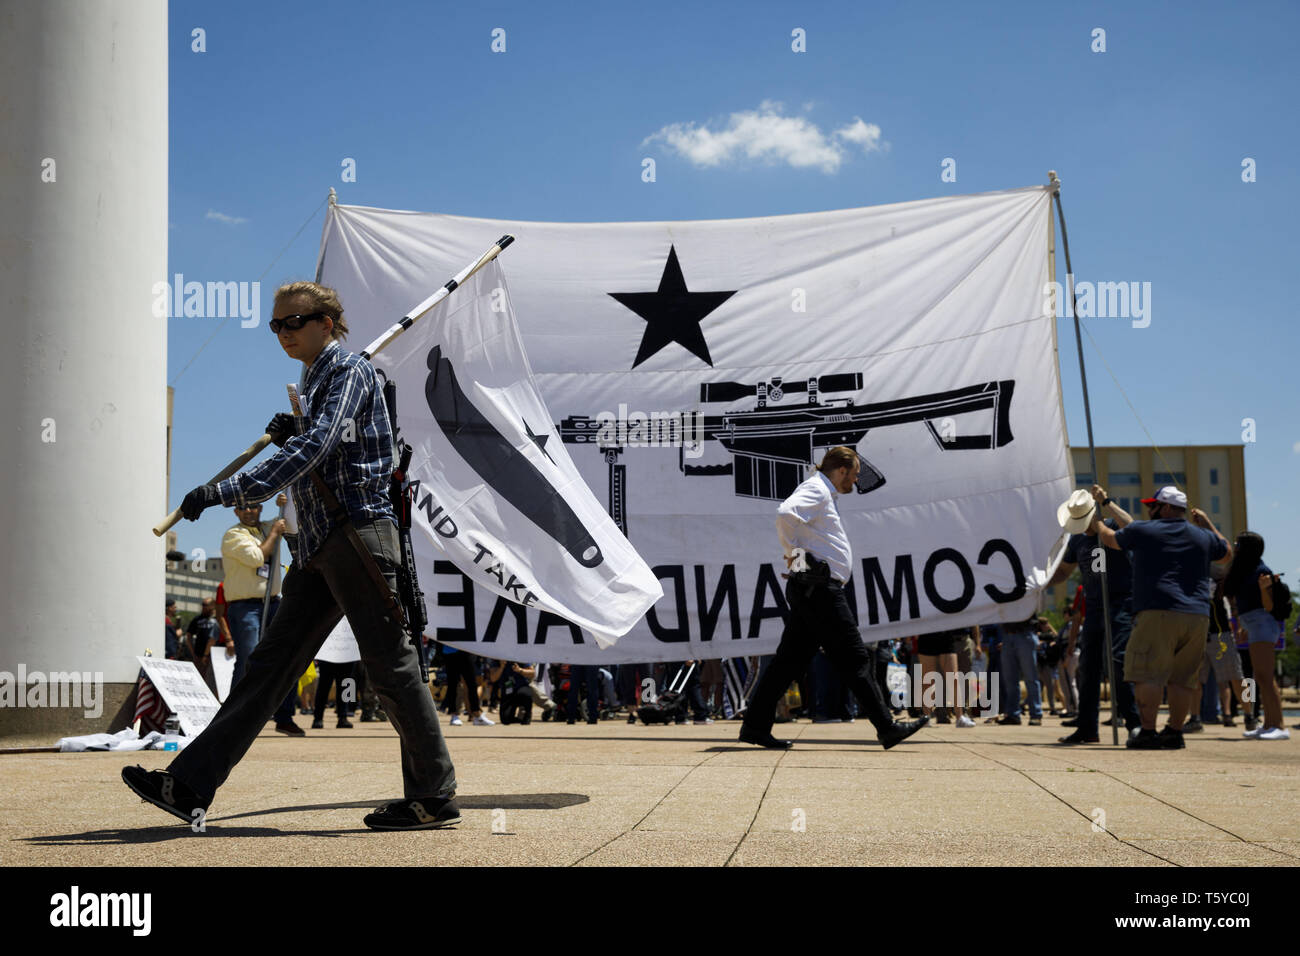 Dallas, Texas, USA. 5th May, 2018. Thomas Bartram, 20, of Houston carries a PTR-91 rifle on his back and a ''Come And Take It'' Gonzales flag - during a protest organized by Open Carry Texas (OCT) on the sidelines of the National Rifle Association (NRA) annual meeting on Saturday, May 5, 2018 in Dallas, Texas. © 2018 Patrick T. Fallon Credit: Patrick Fallon/ZUMA Wire/Alamy Live News Stock Photo